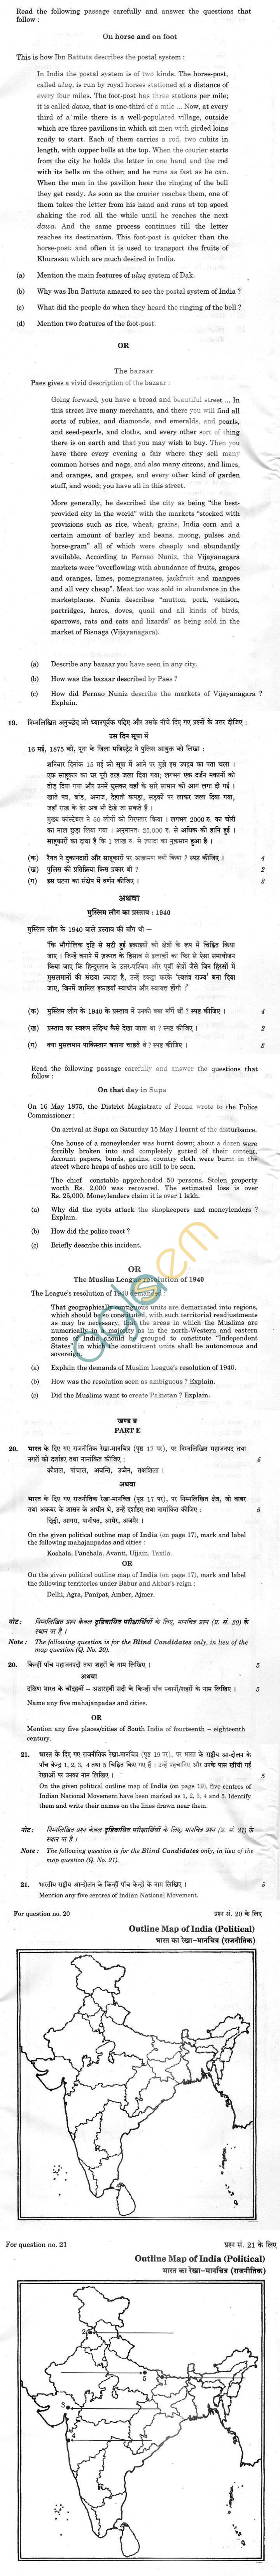 CBSE Compartment Exam 2013 Class XII Question Paper - History